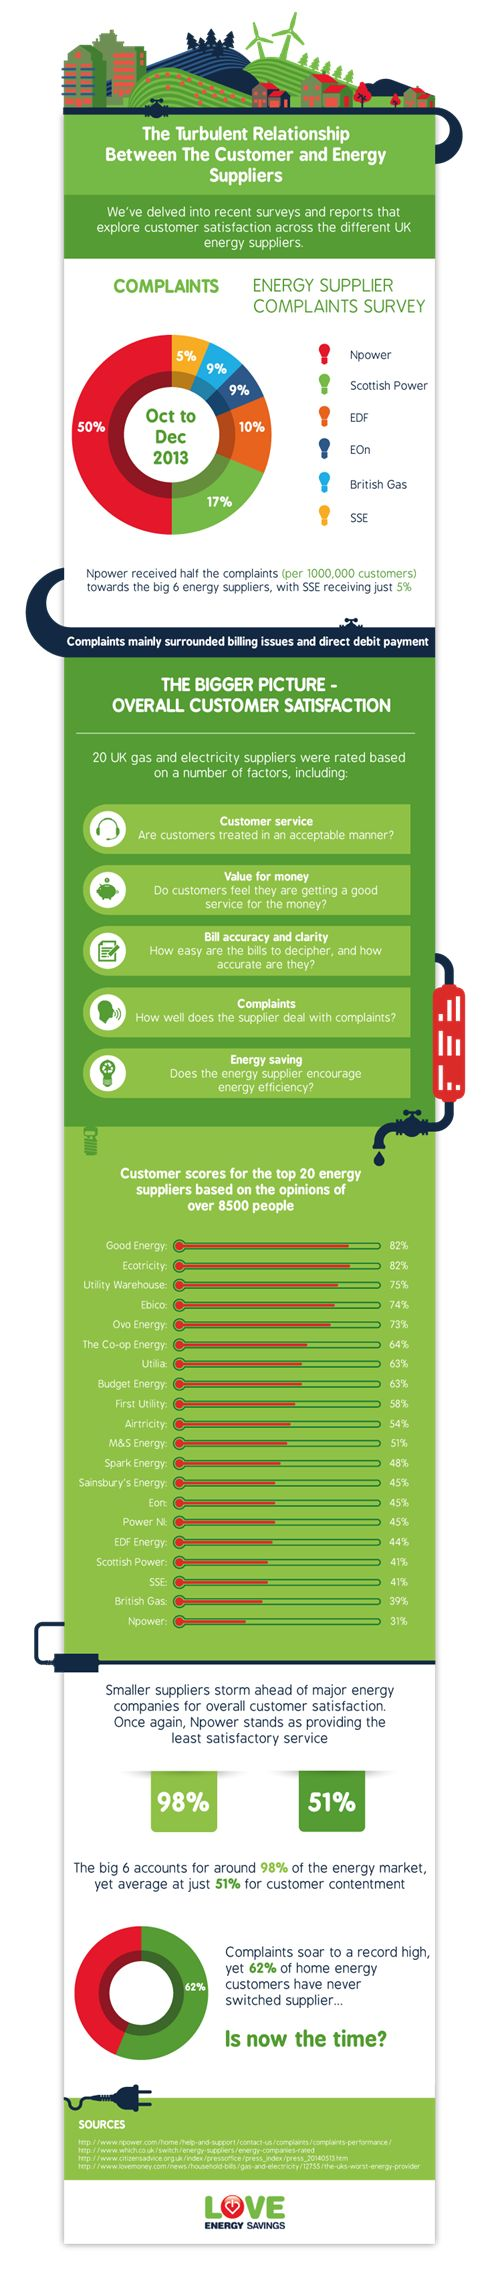 The Turbulent Relationship Between the Customers and Energy Suppliers #infographic #Business #Energy